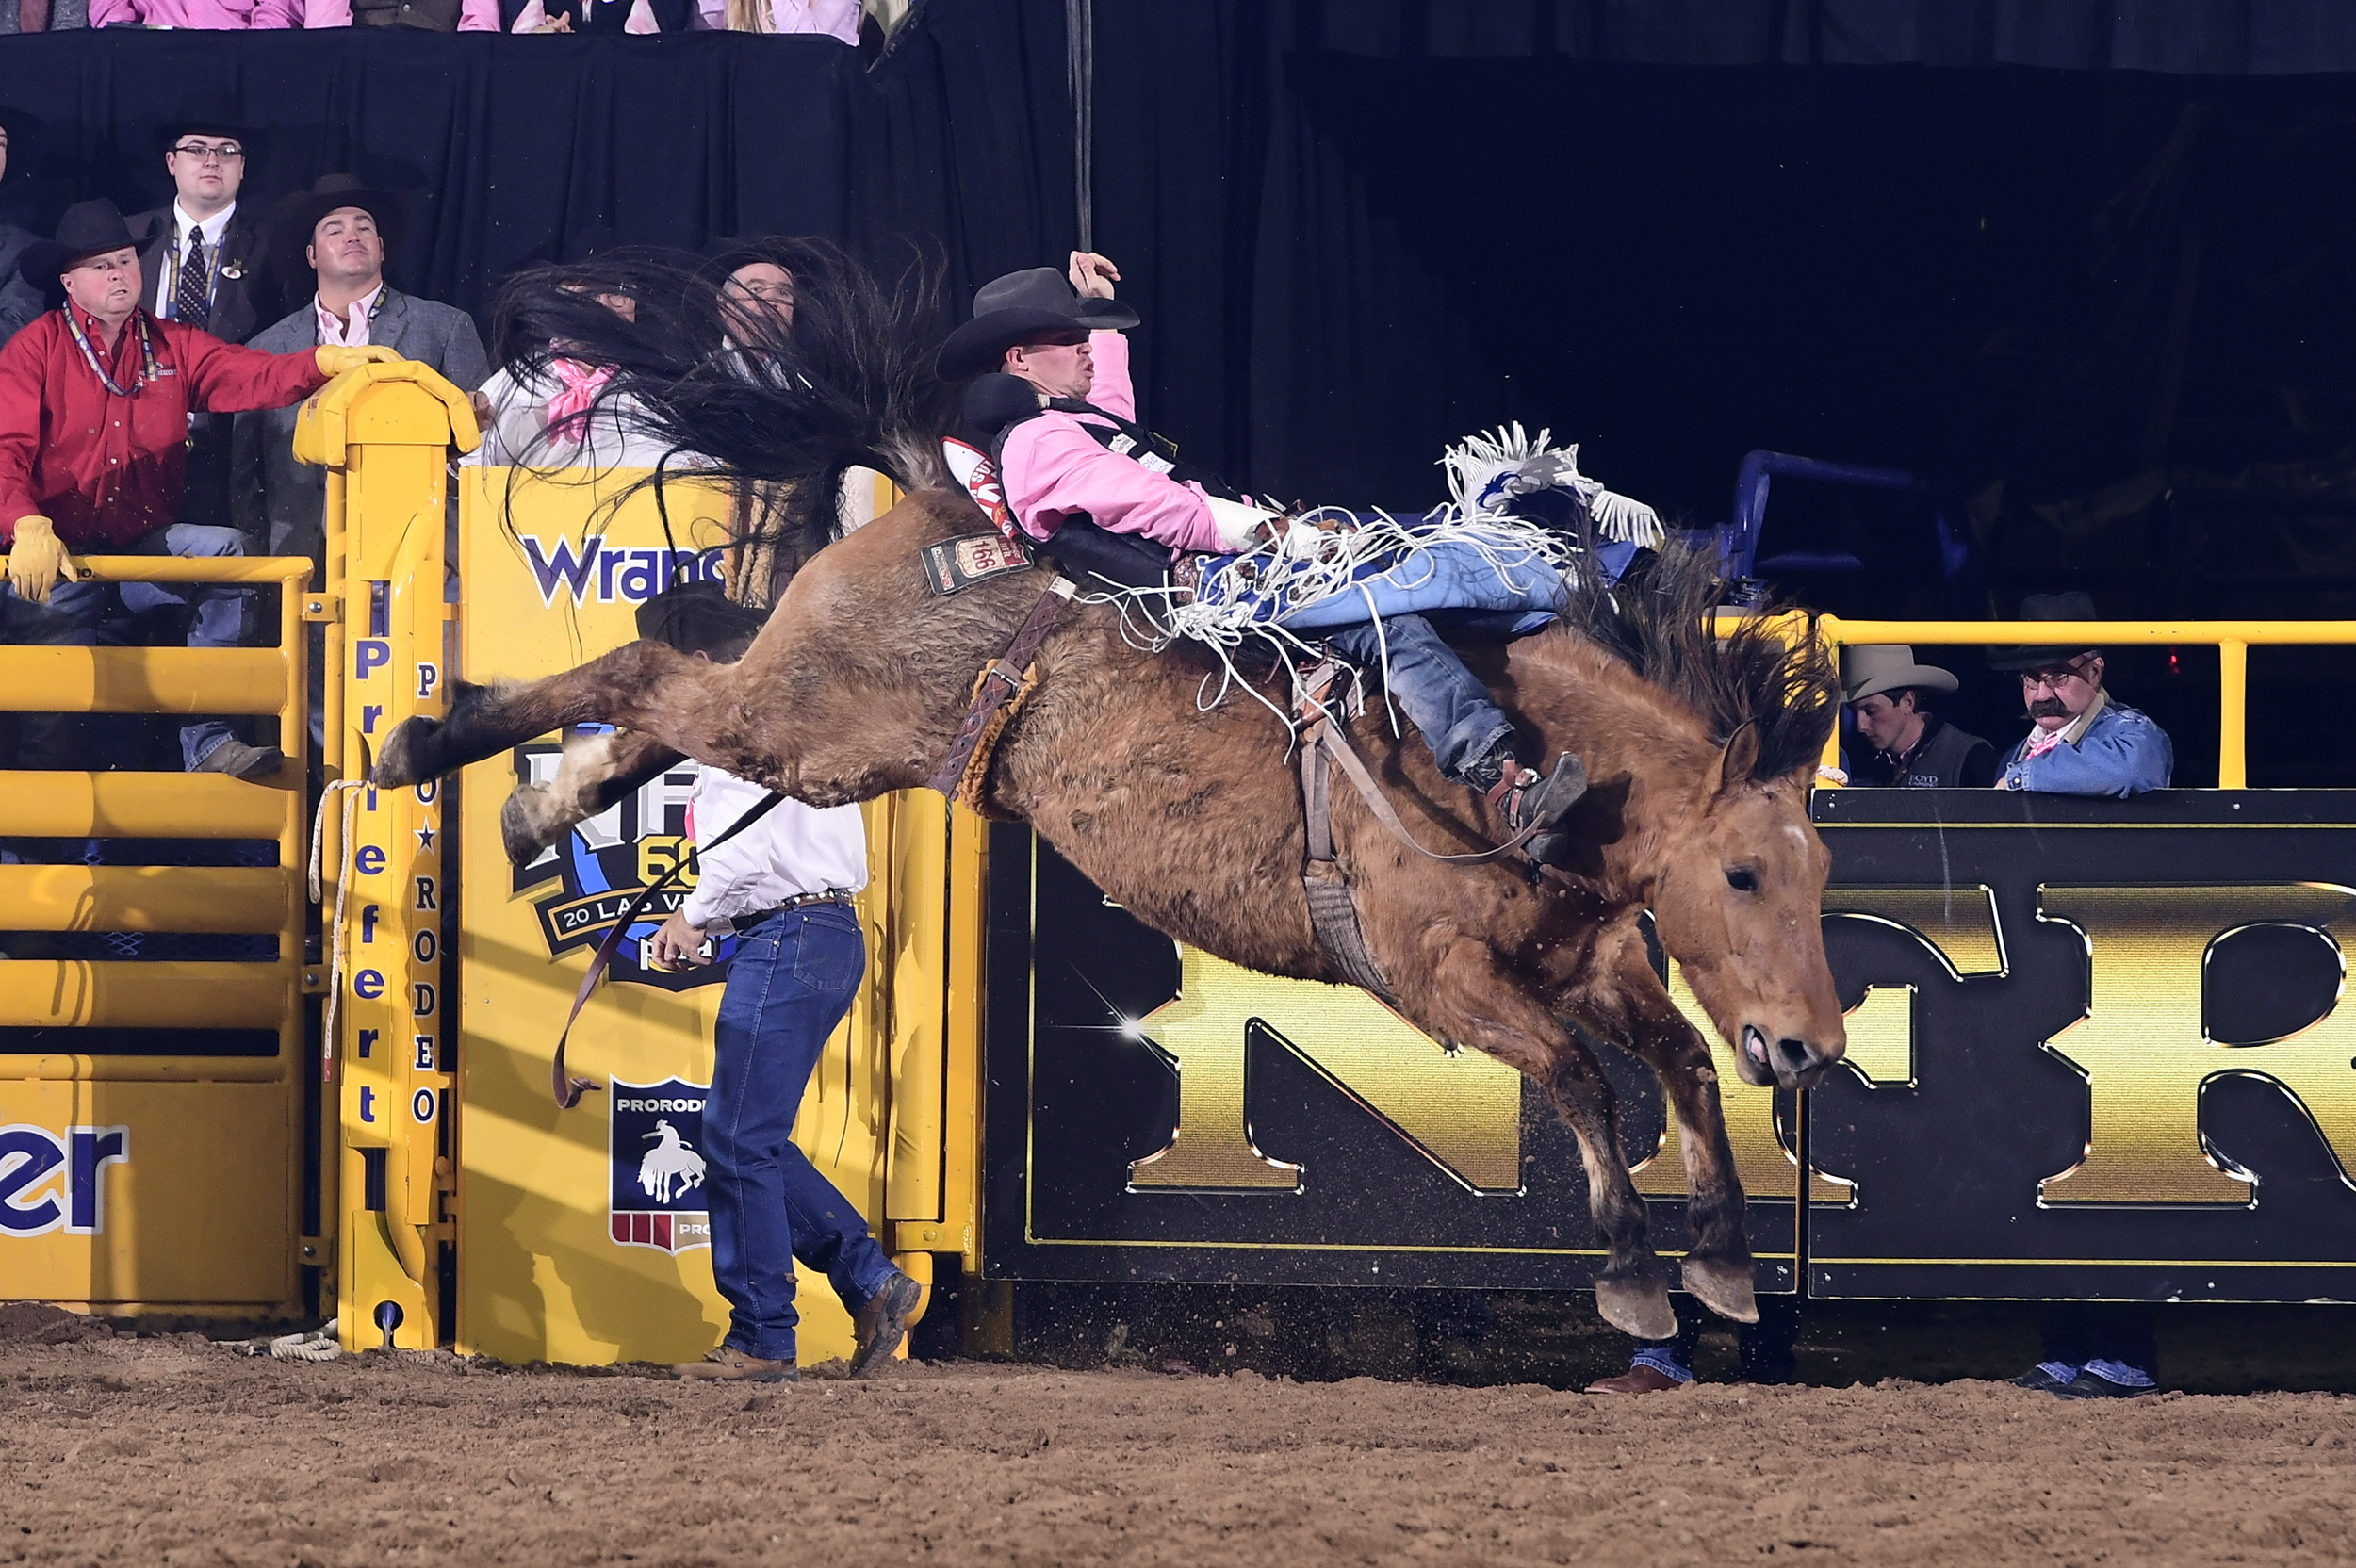 Orin Larsen rides Painted River for 87 points to finish sixth during Monday's fifth round of the National Finals Rodeo. It's his second payday of this year's NFR. (PRCA PRORODEO PHOTO BY JAMES PHIFER)